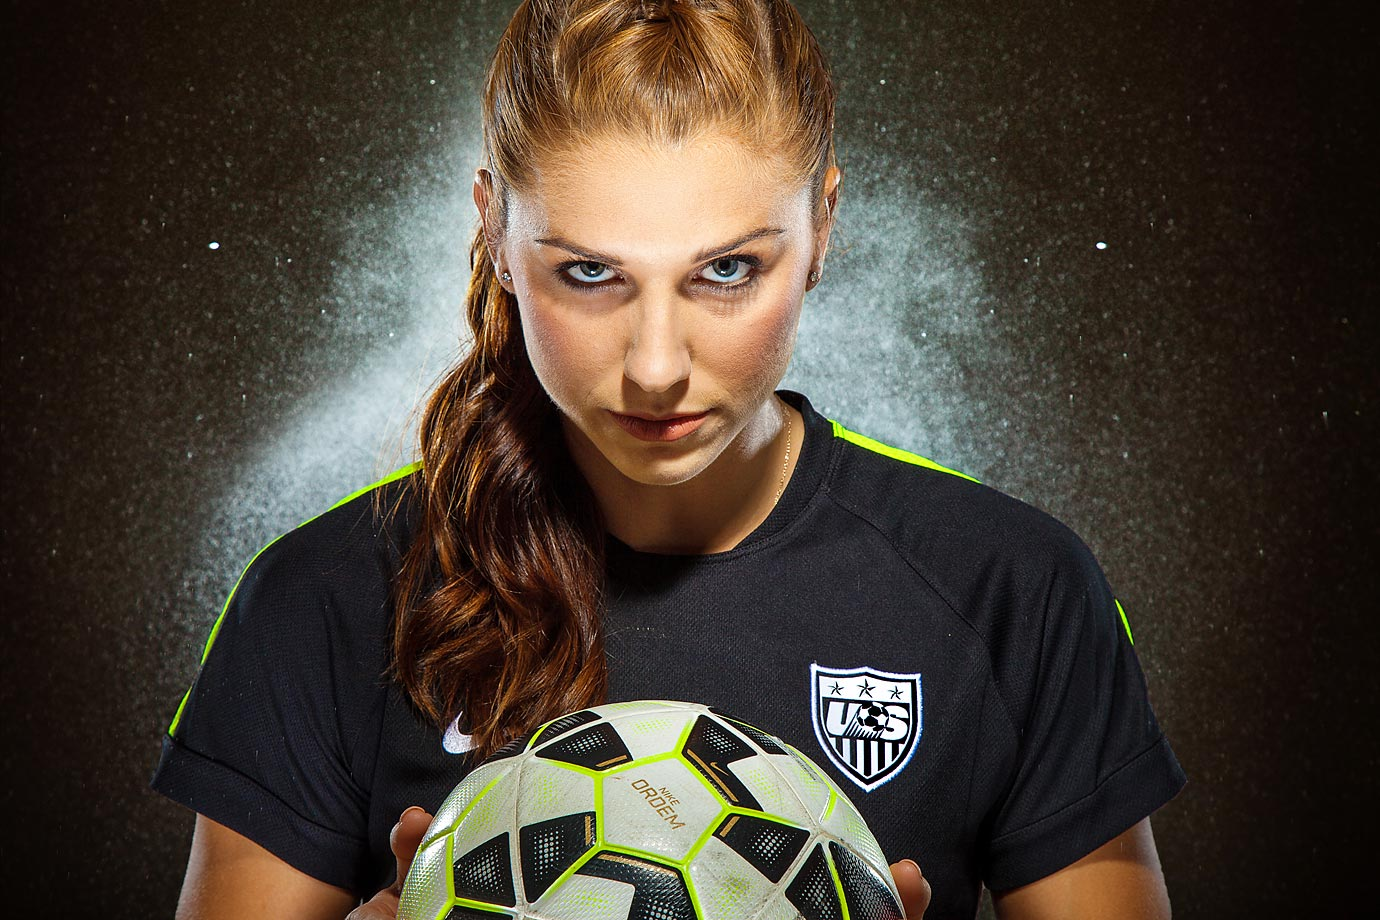 Soccer Wallpaper Quotes Mia Hamm Source Alex Morgan Going To Orlando In Blockbuster Nwsl